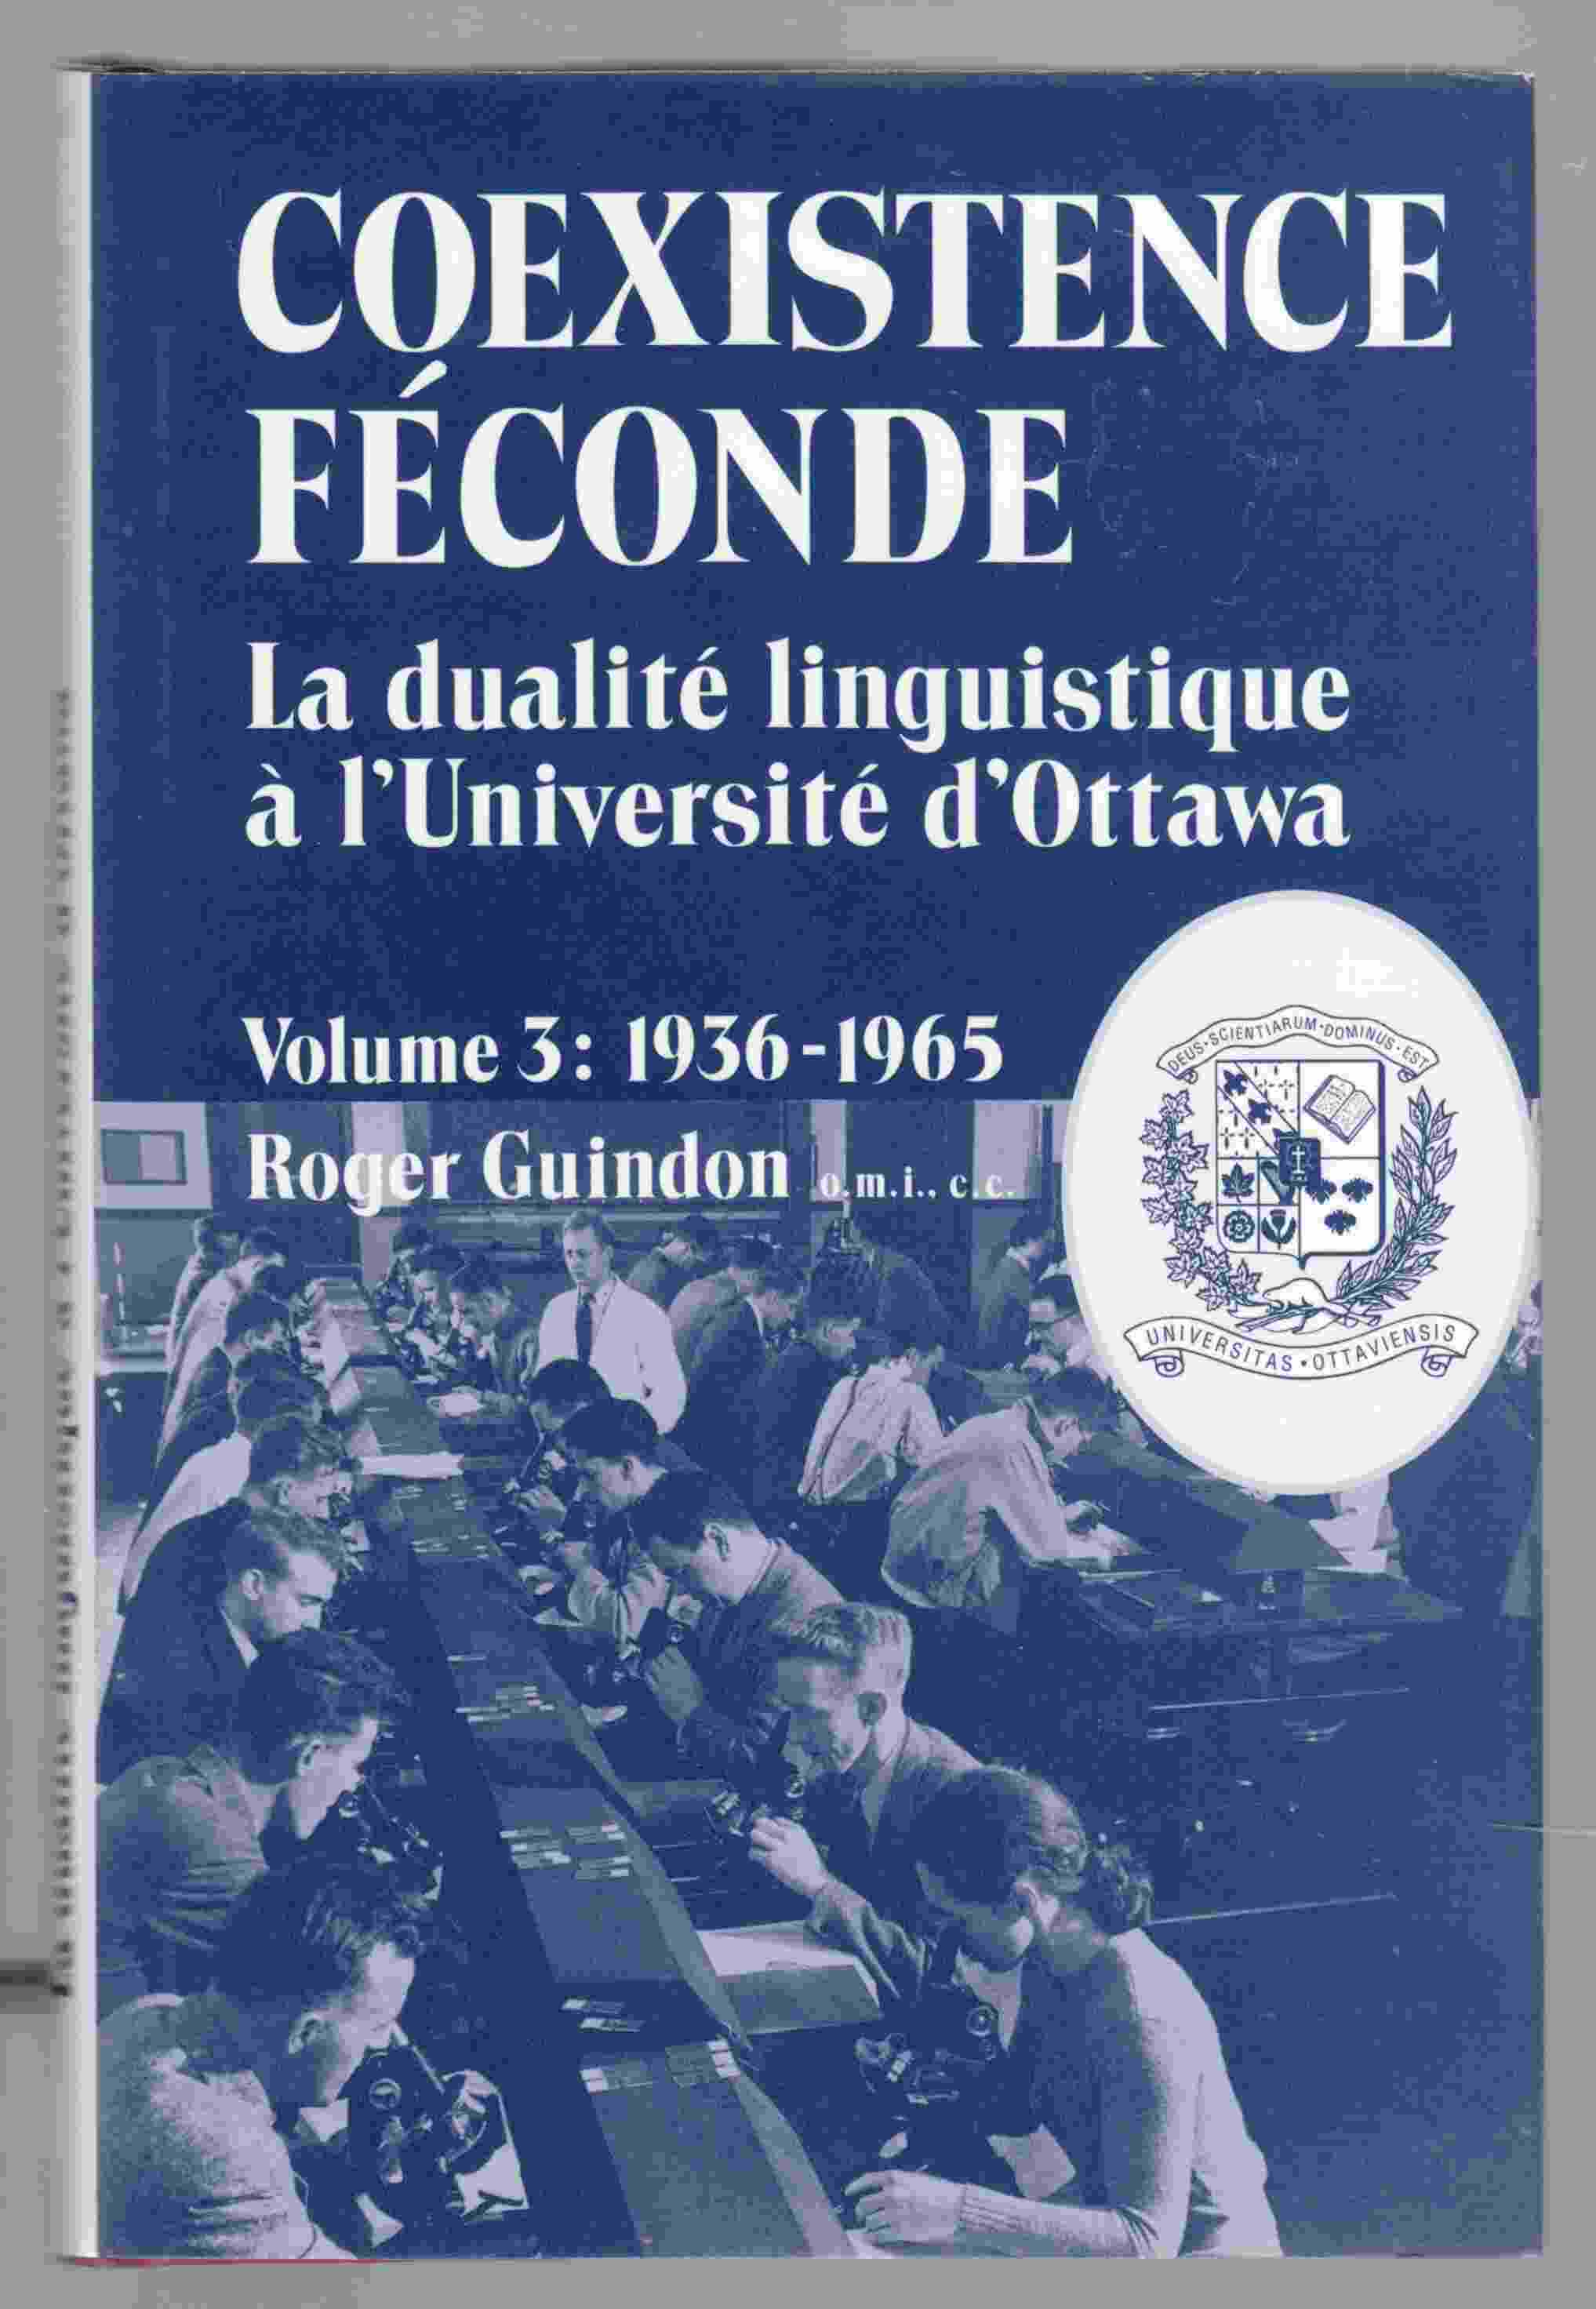 Image for Coexistence Feconde La Dualite Linguistique a L'Universite D'Ottawa Volume 3: 1936-1965